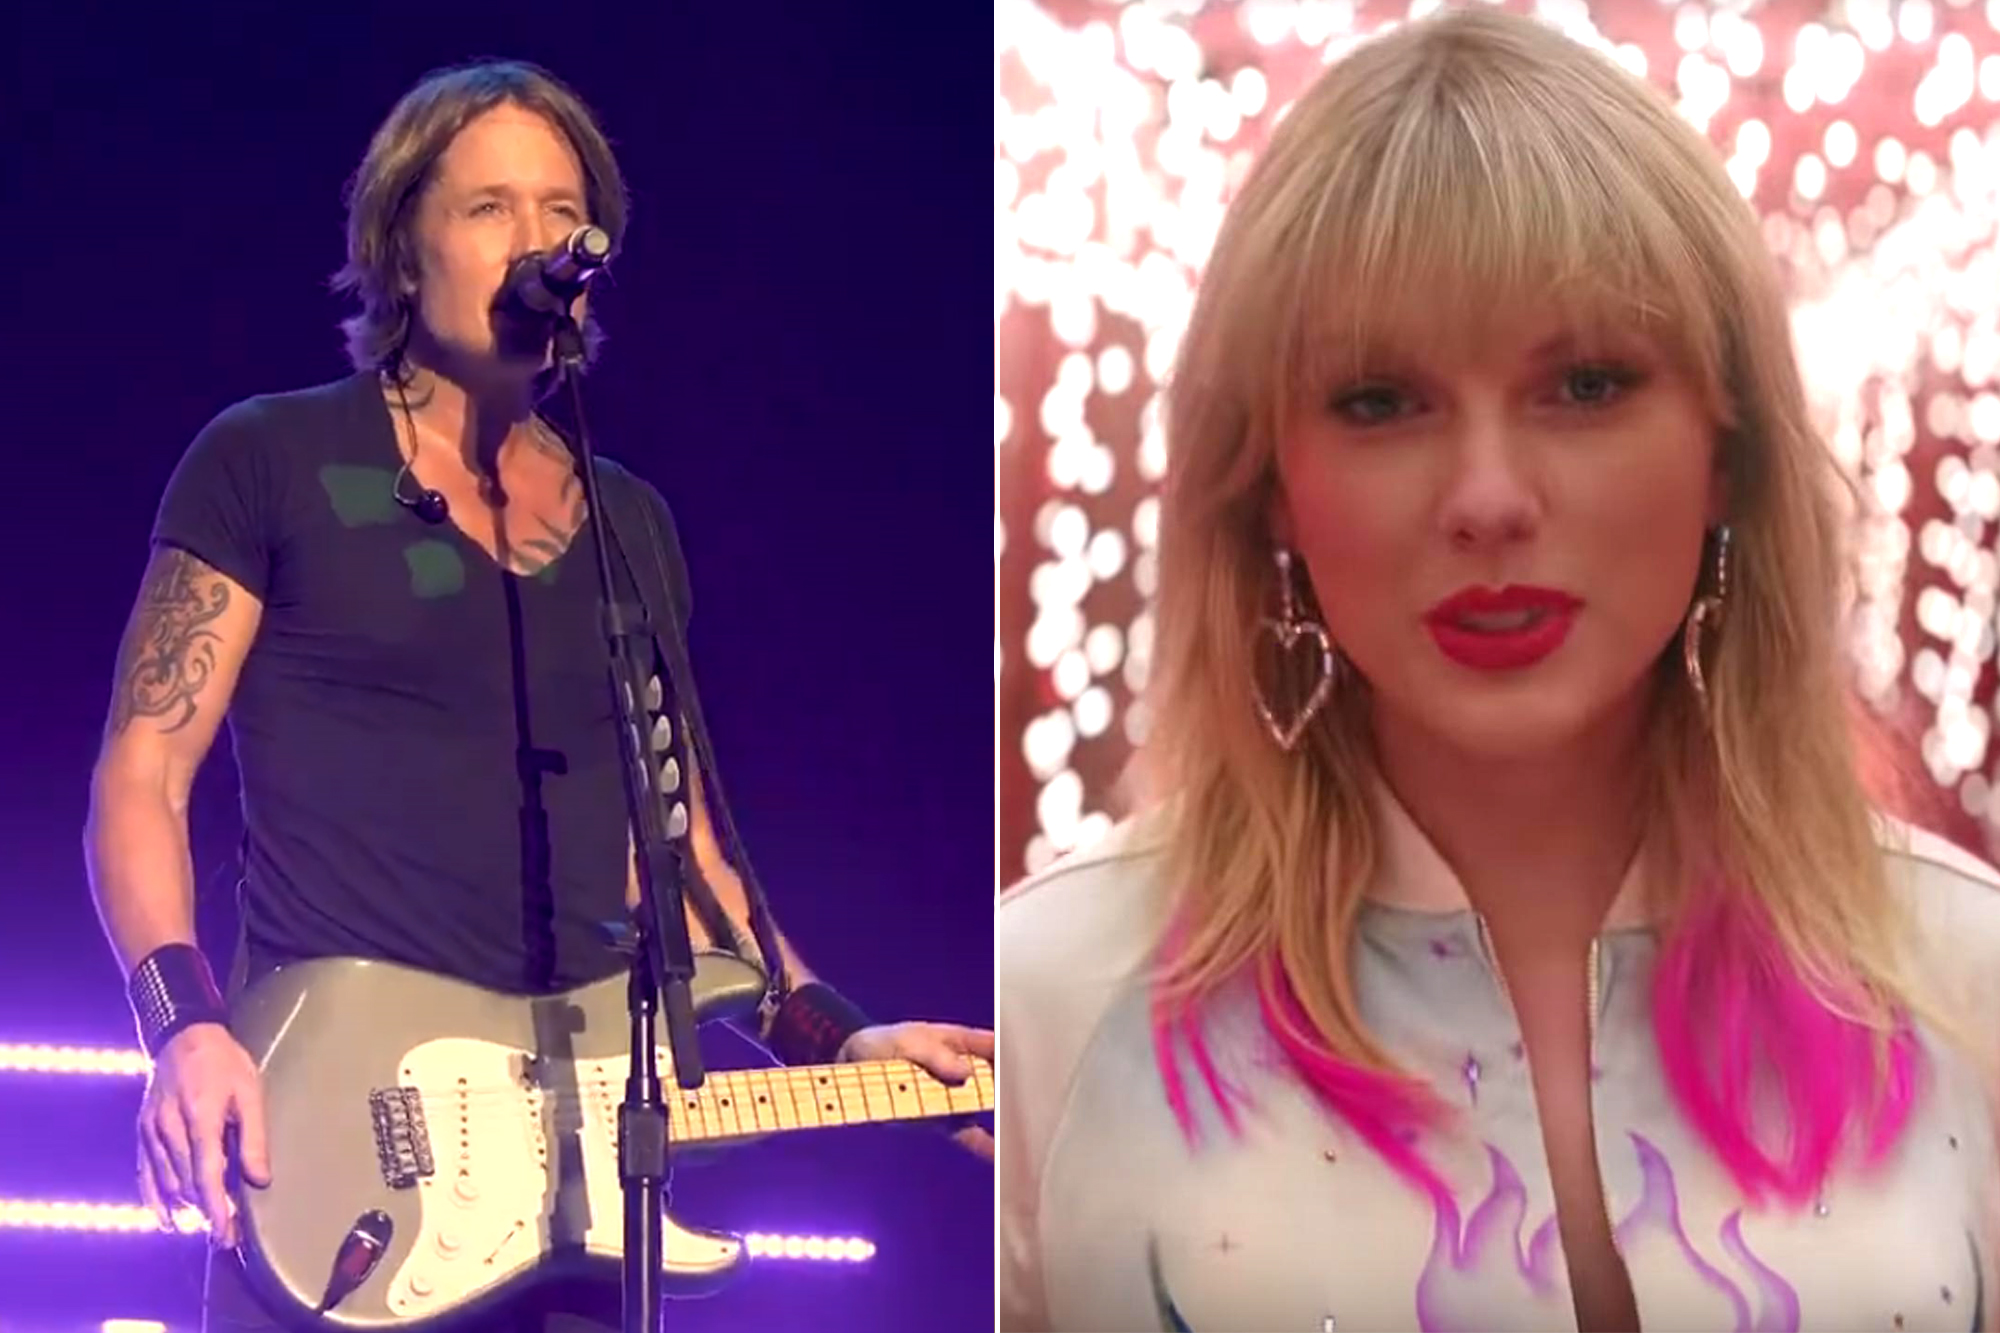 Keith Urban / Taylor Swift